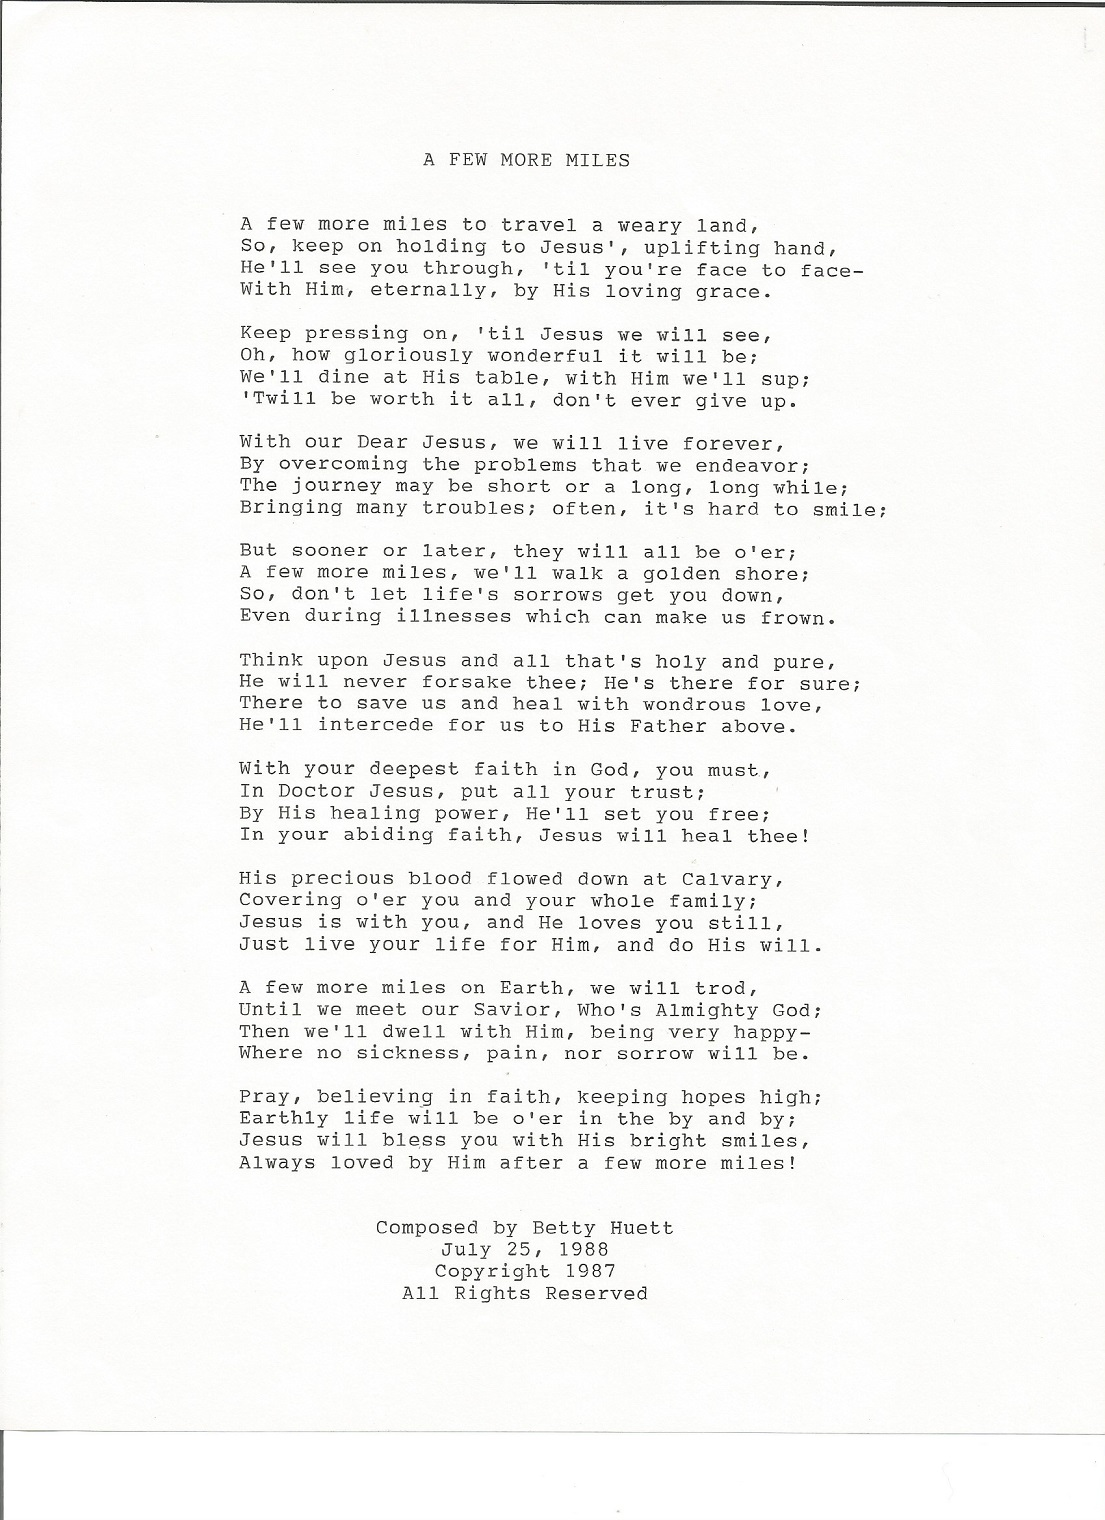 A FEW MORE MILES...poem...Composed by Sister Betty Huett, July 25, 1988  .jpg